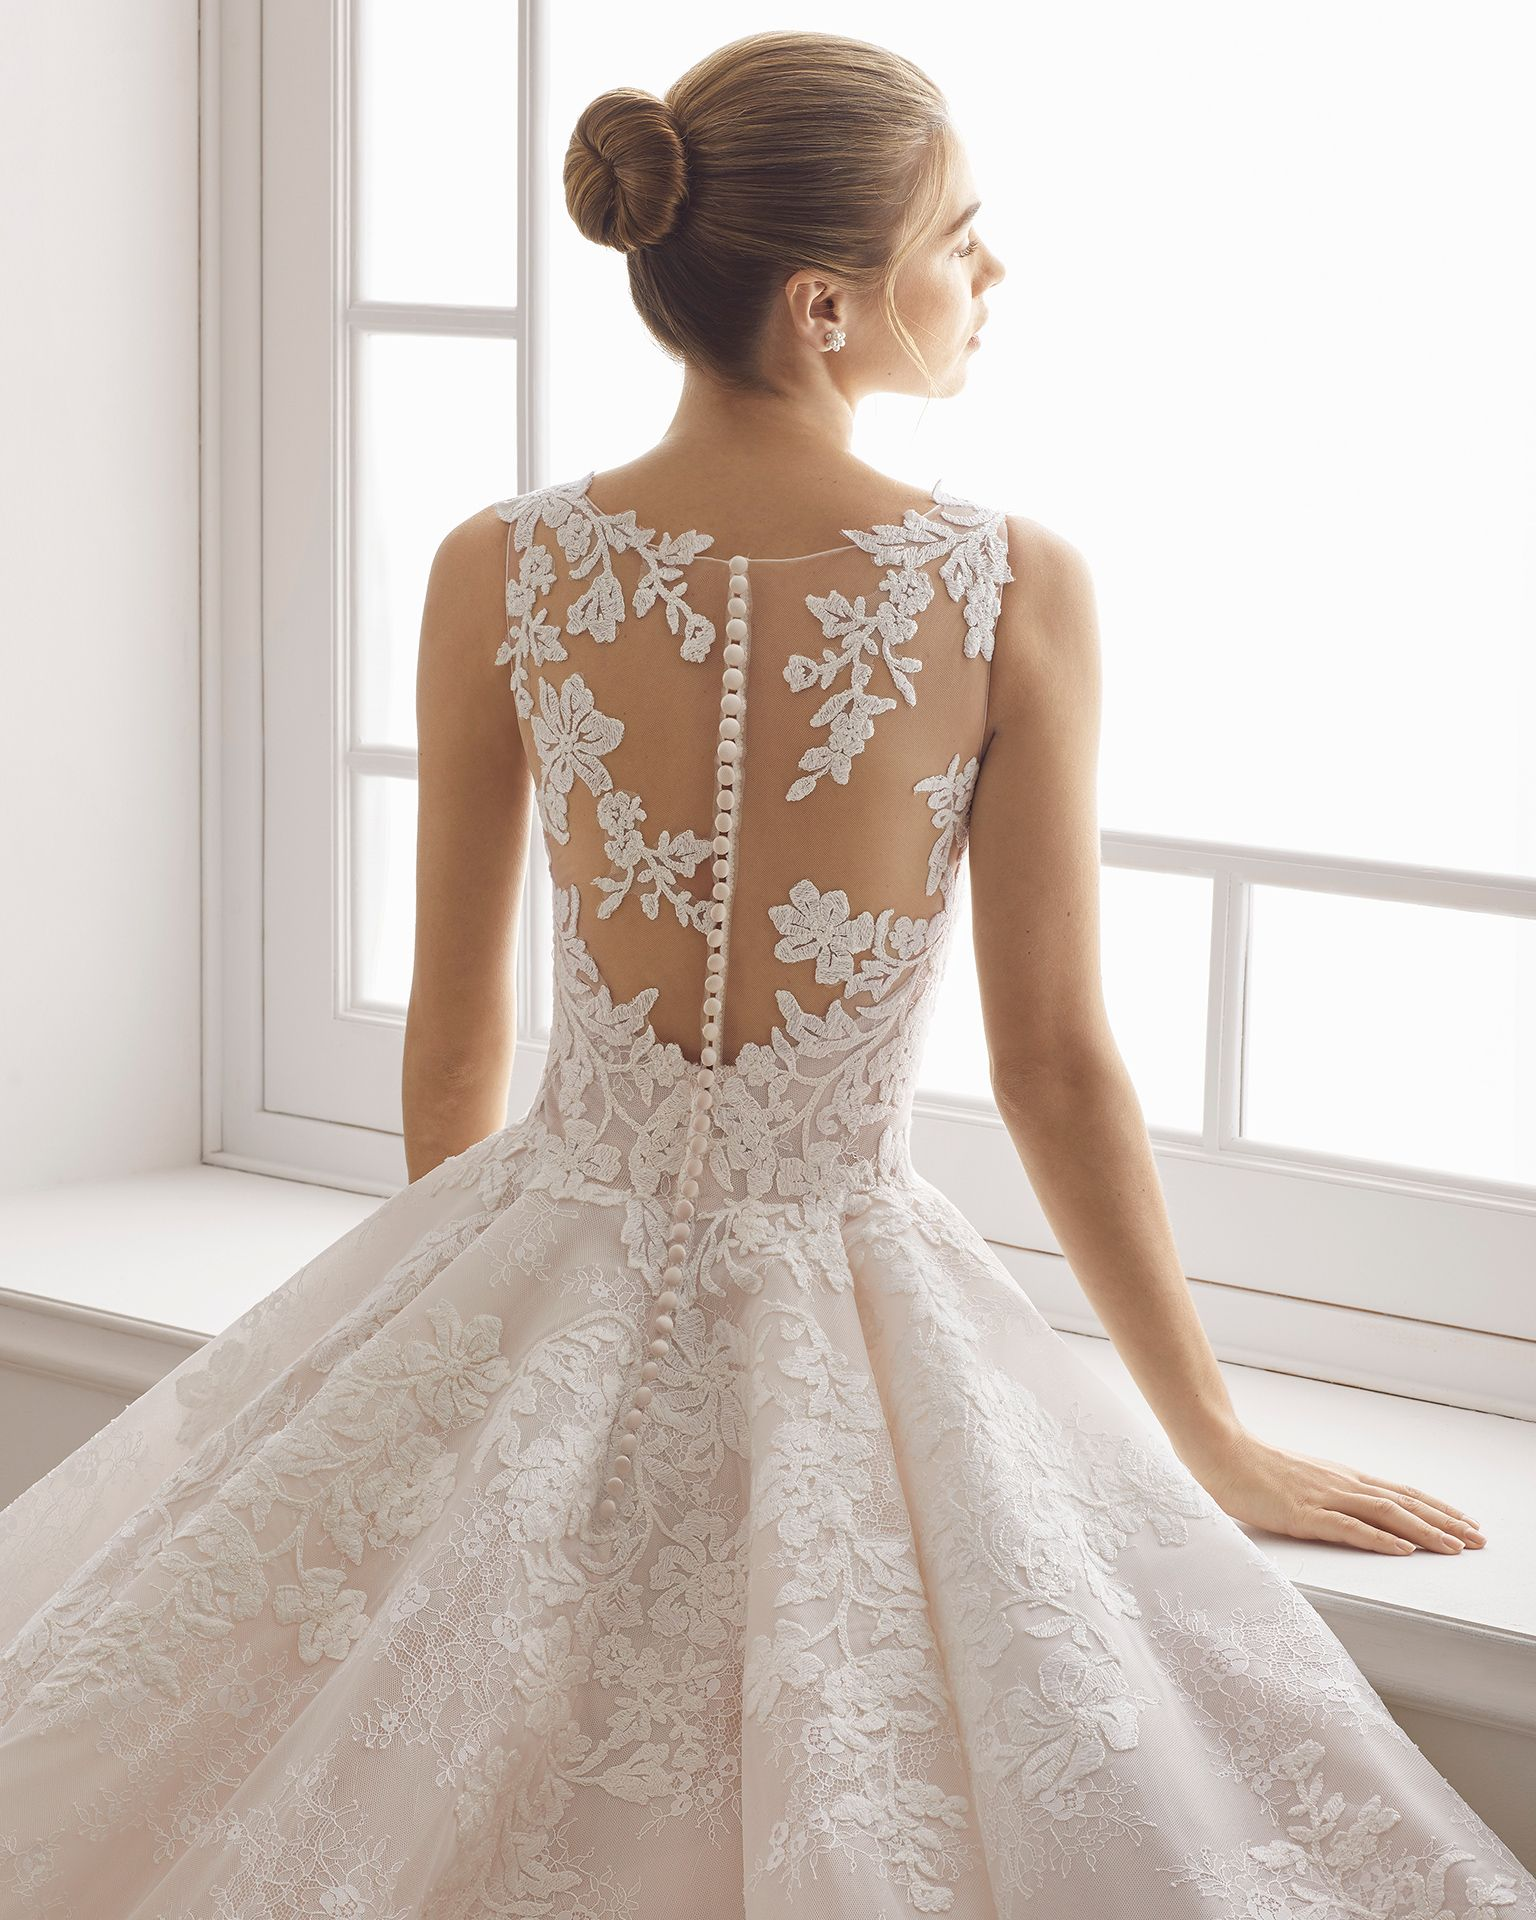 Princessstyle lace wedding dress with vneckline lace back and